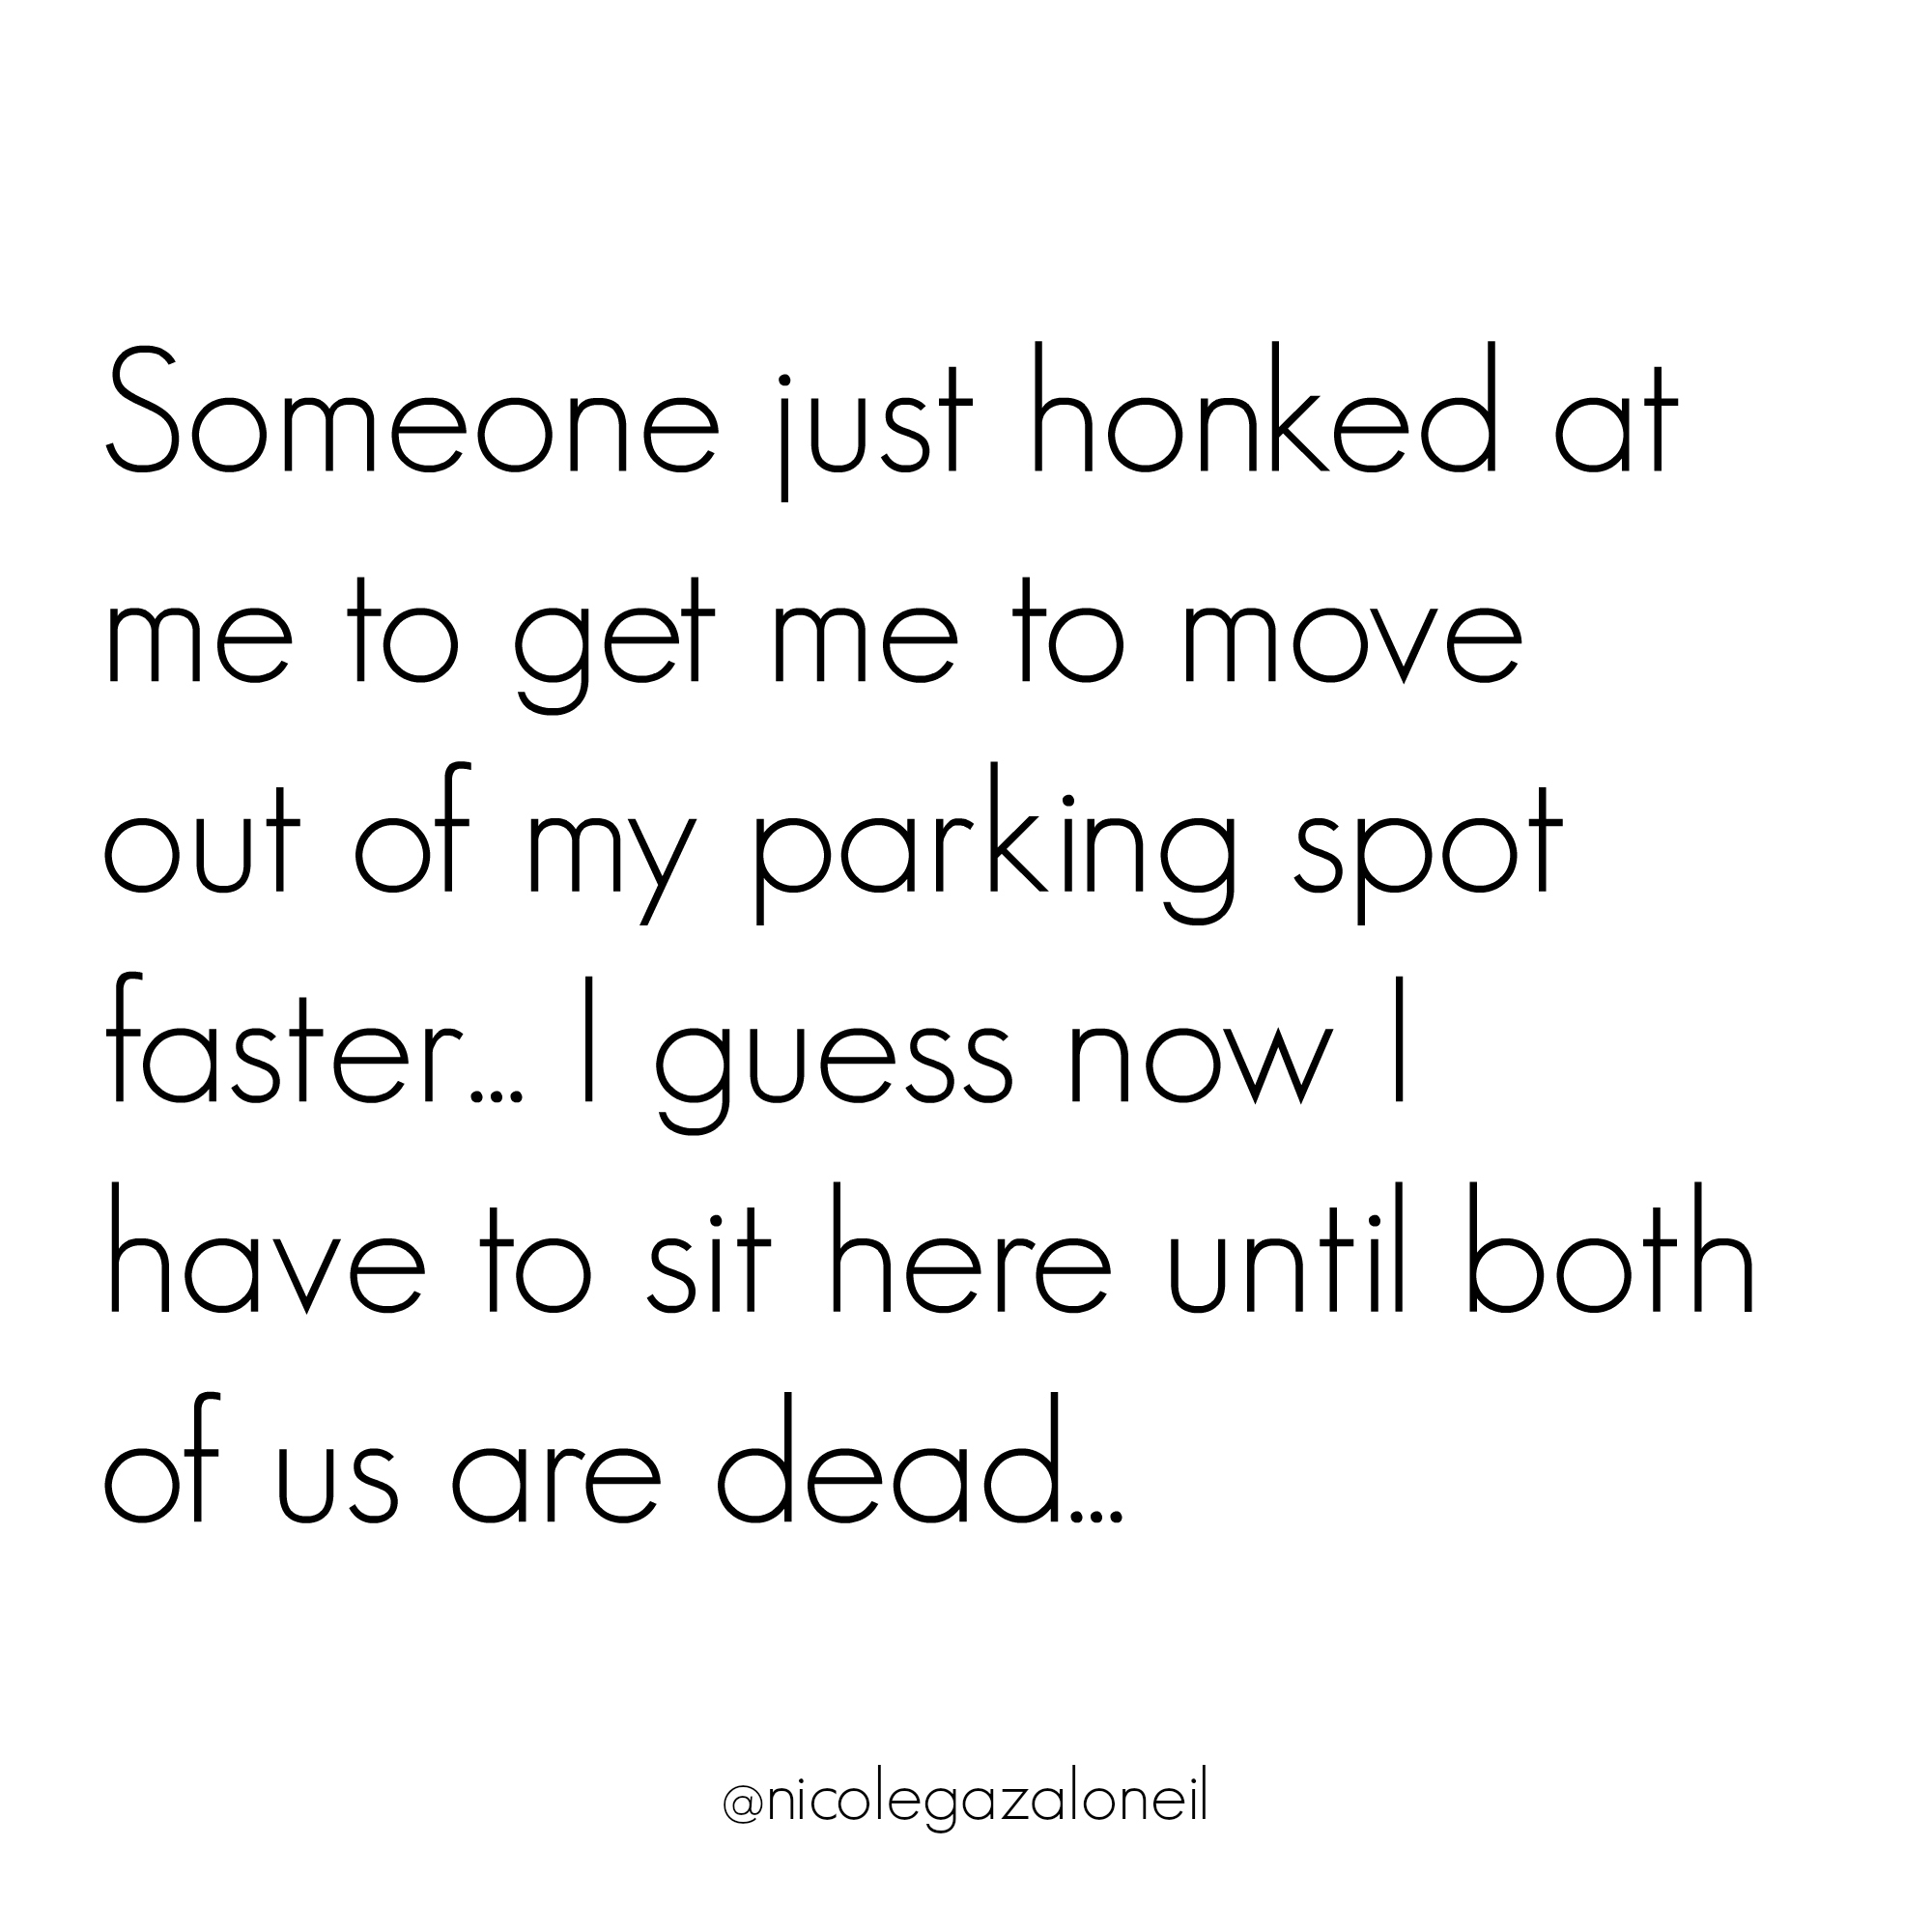 Someone just honked at me to get me to move out of my parking spot faster... I guess now I have to sit here until both of us are dead....